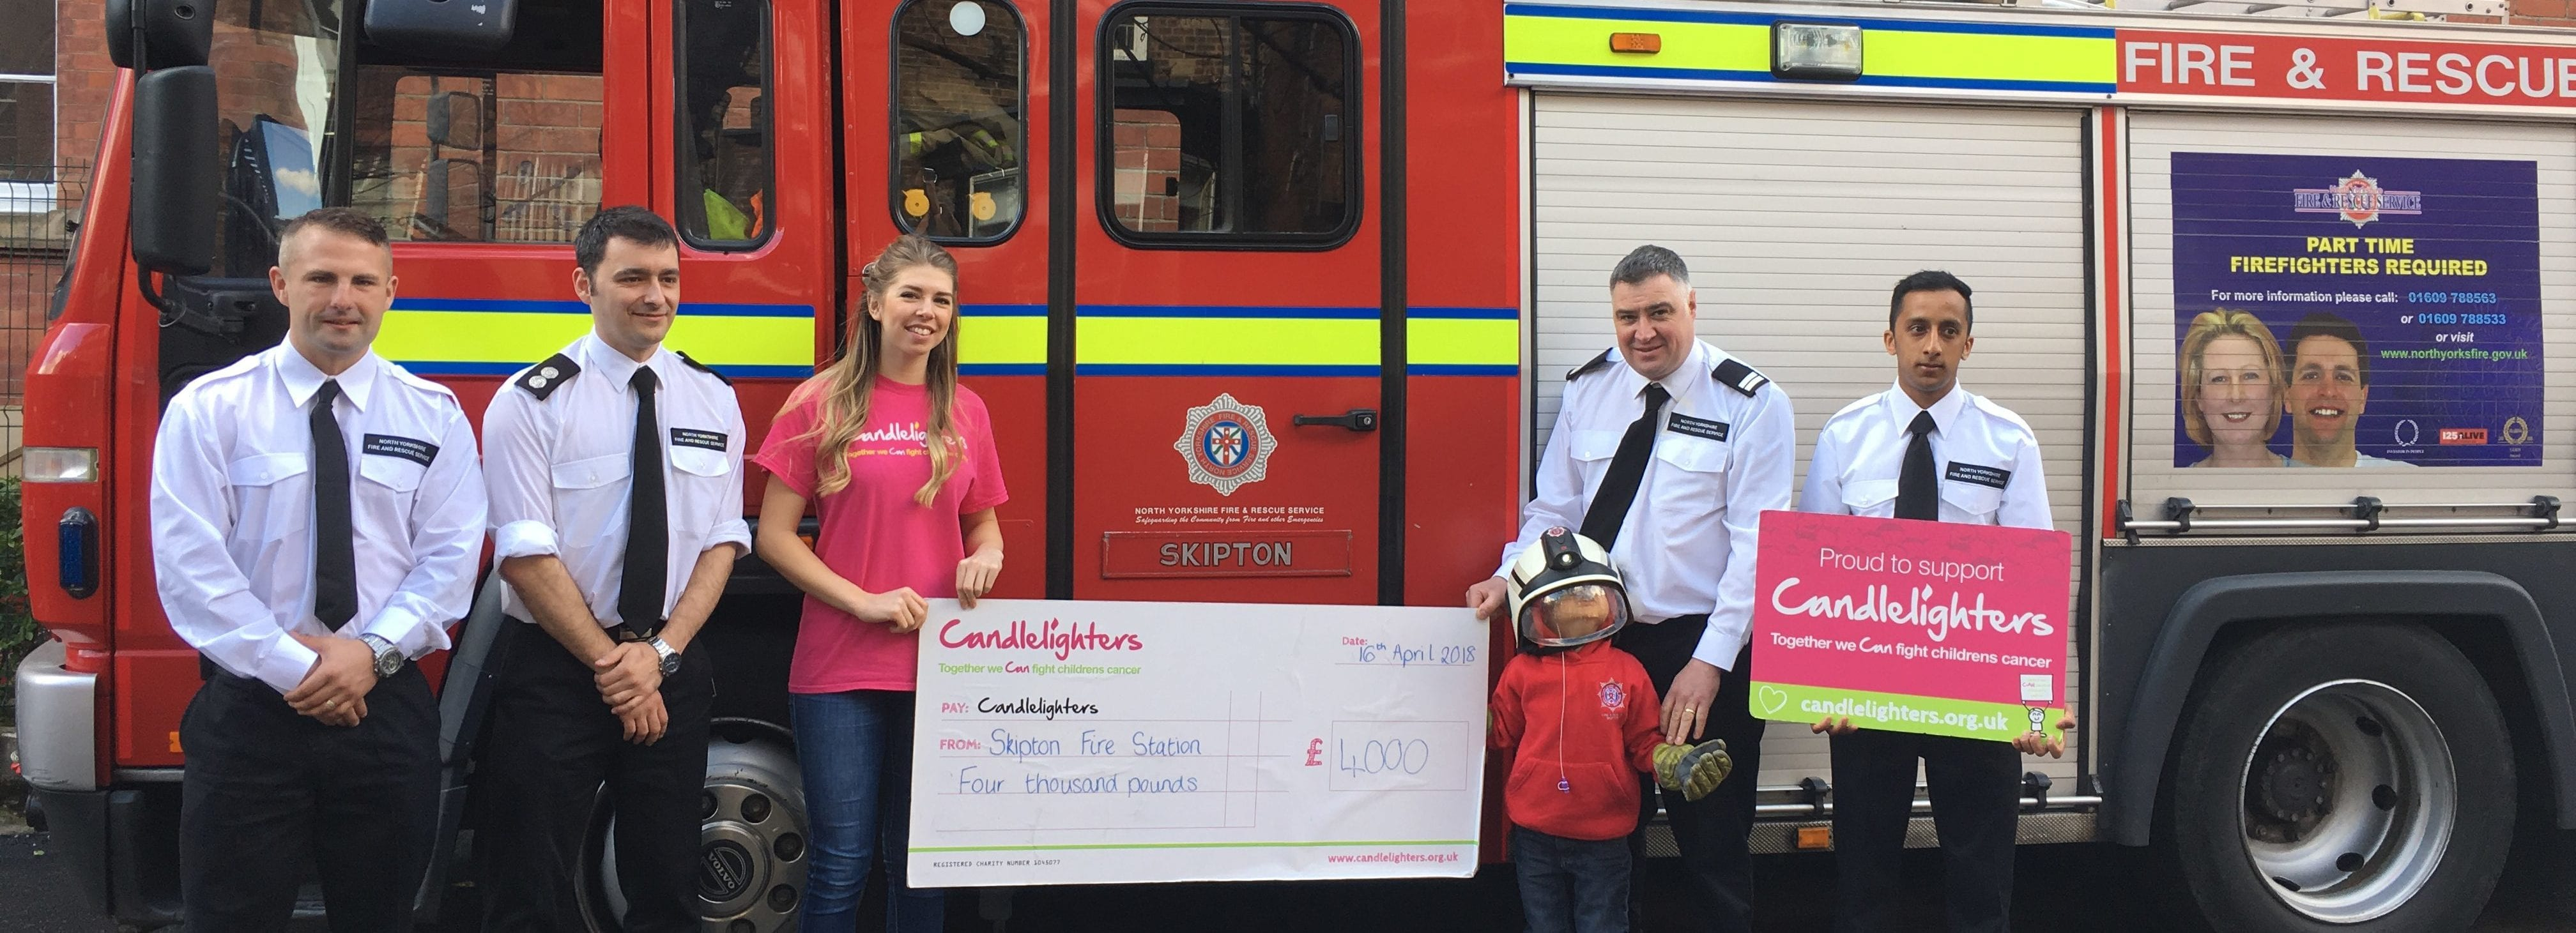 Skipton Fire Station fundraise in support of local boy, William